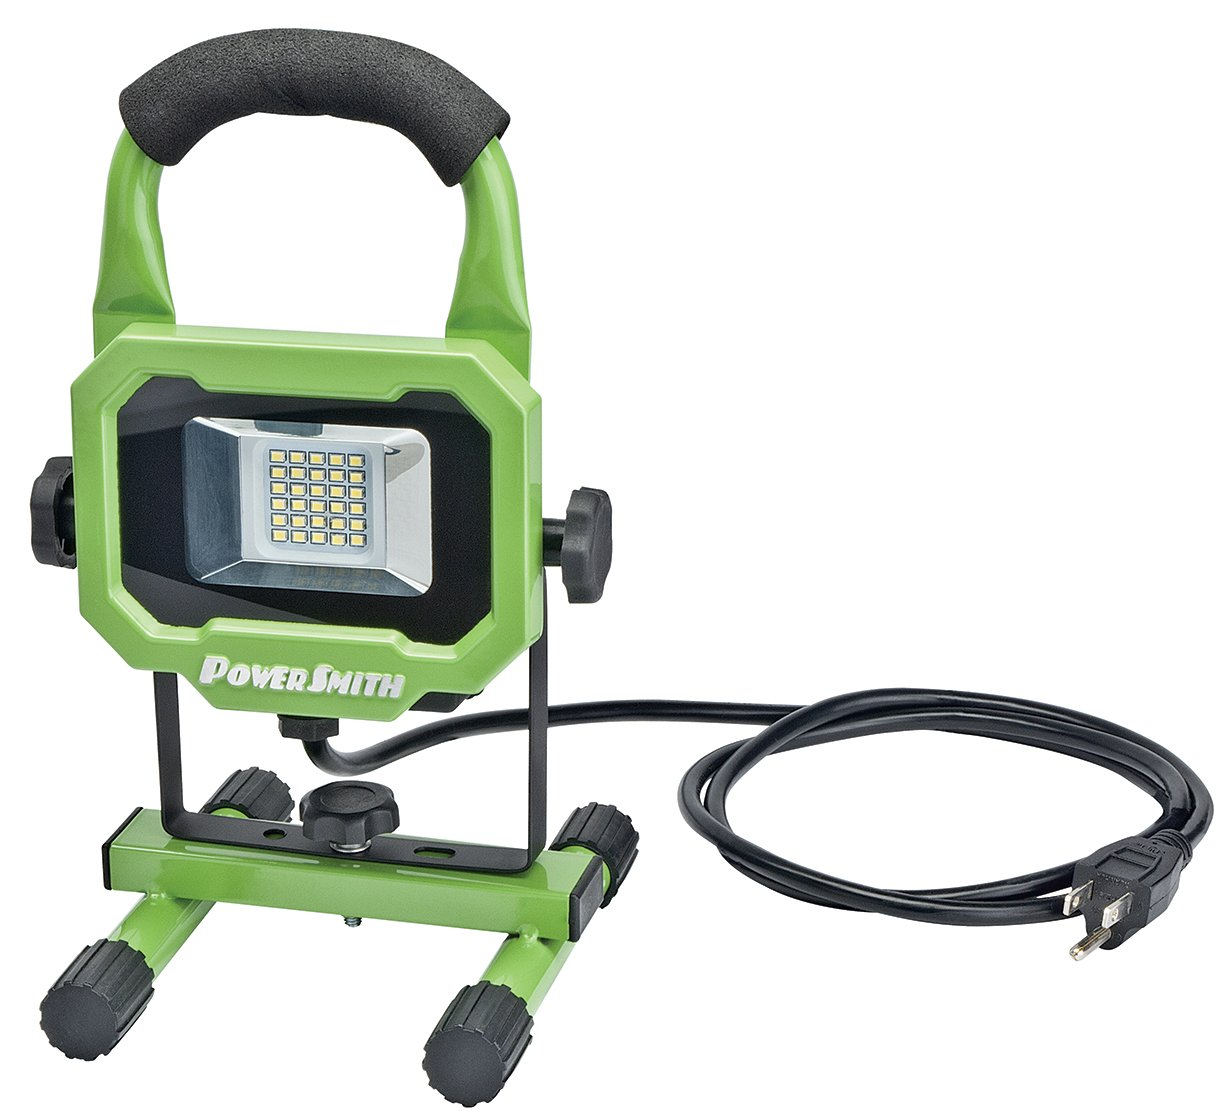 PowerSmith PWL1115BS 15W 1400 Lumen LED Work Light Equippped with Metal Stand and Lamp Housing with 5 ft power cord